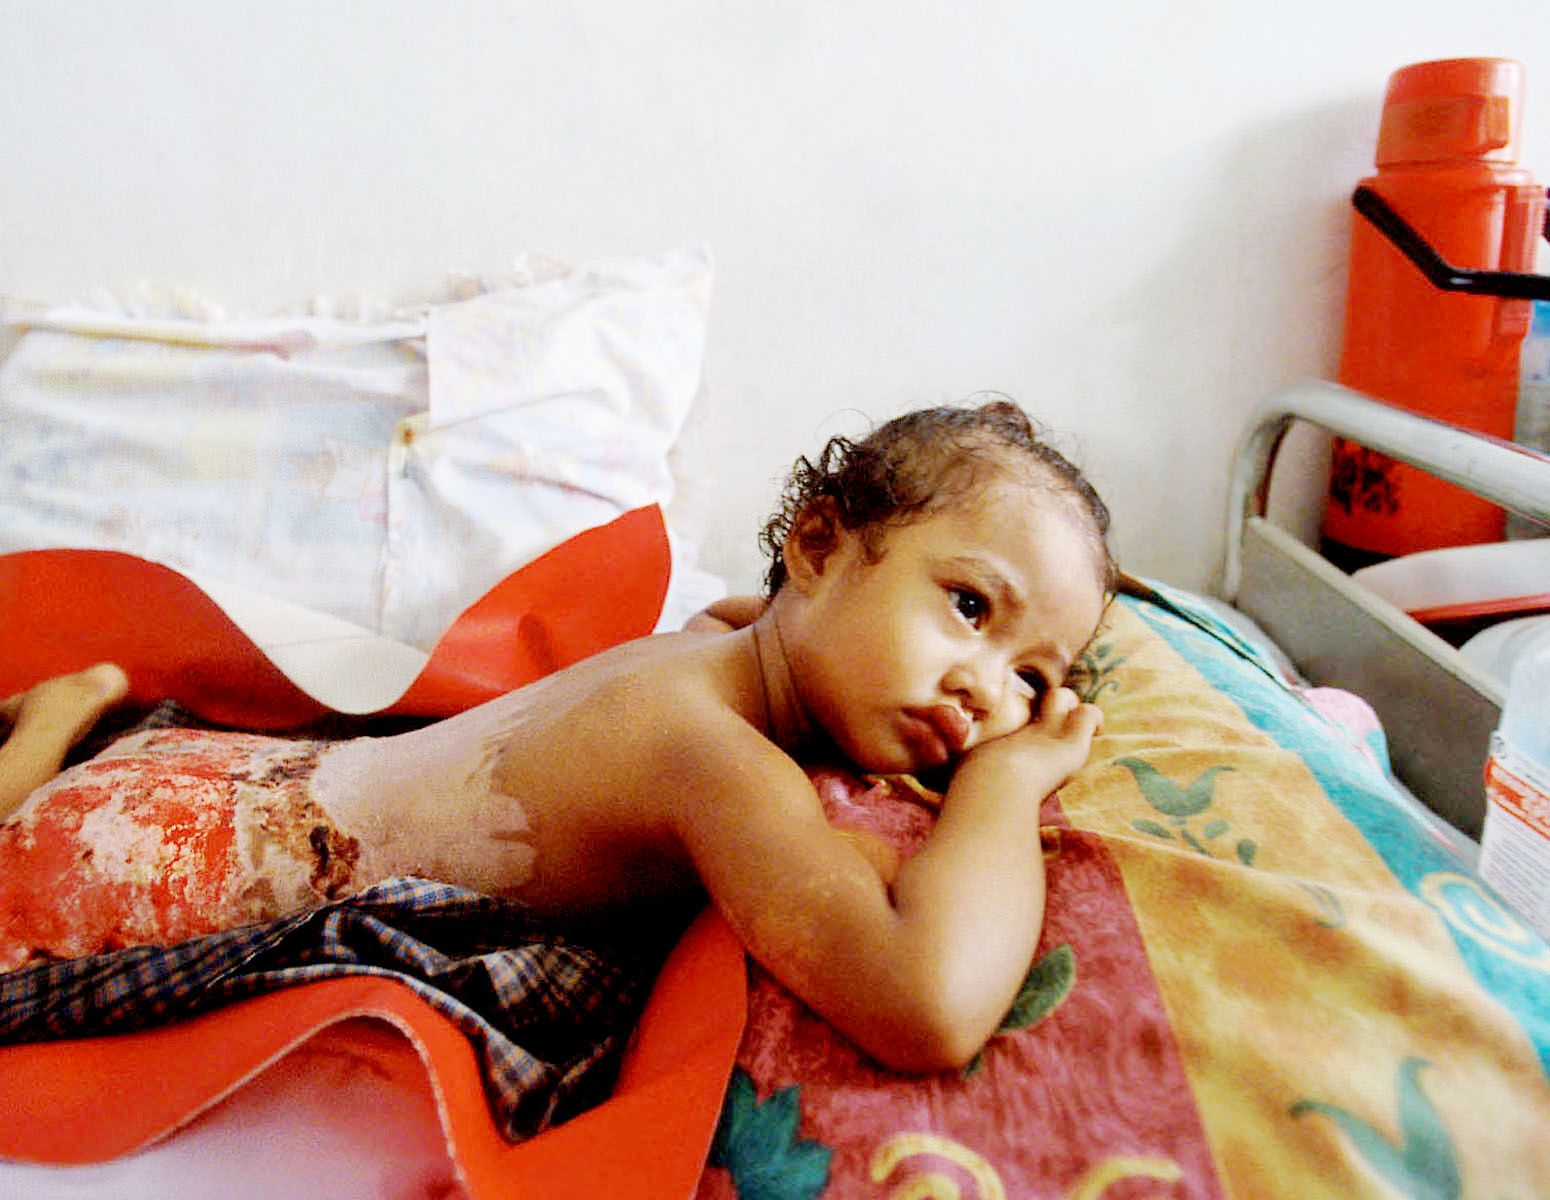 I visited Zainal Abidin hospital.It was easy to find victims of conflict.I saw one little girl who was badly burned.When her village was set on fire by Indonesian soldiers, she could not escape. Some twelve houses were burned down.